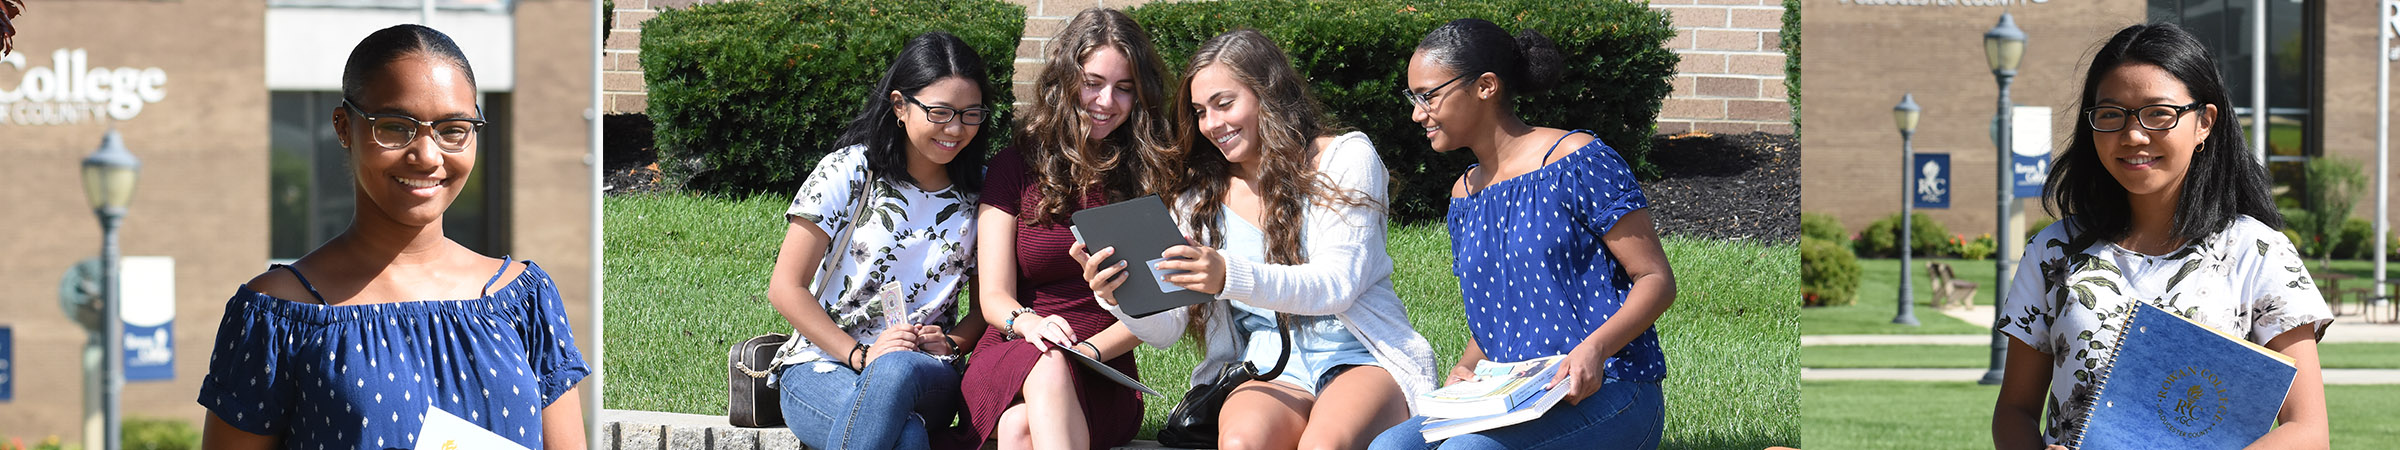 Students looking at an iPad on campus